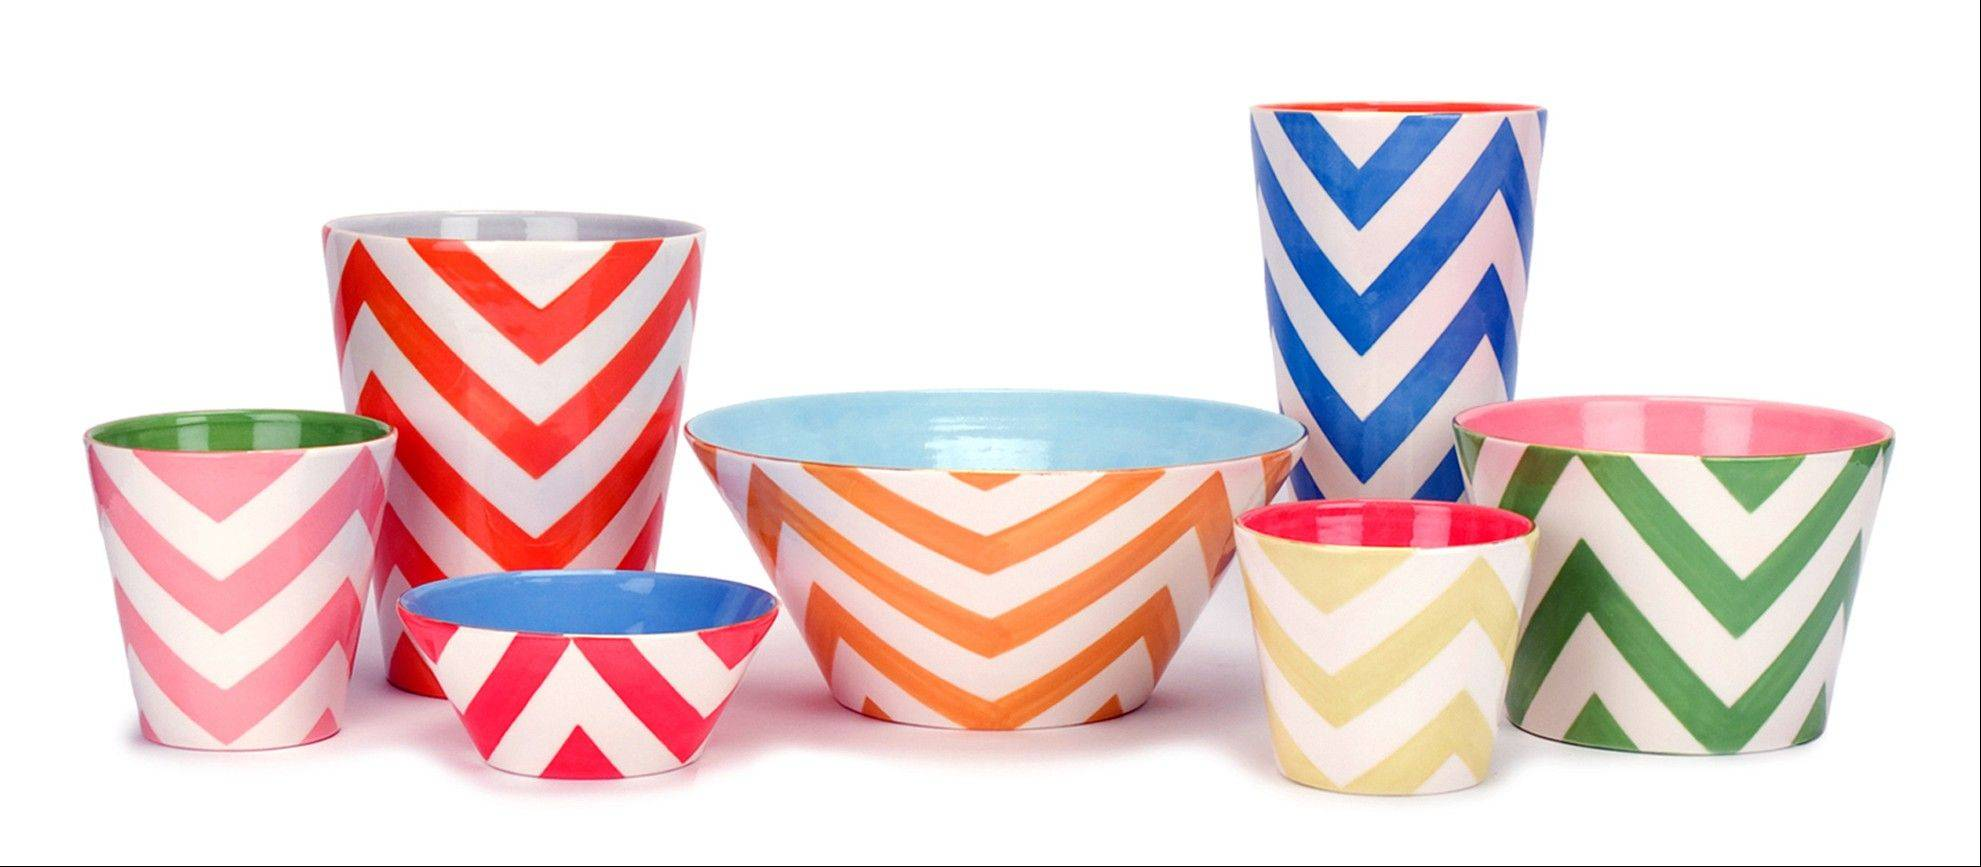 These Buckley chevron vases and bowls add a cheerful note to any room, from $76 at www.jillrosenwald.com.